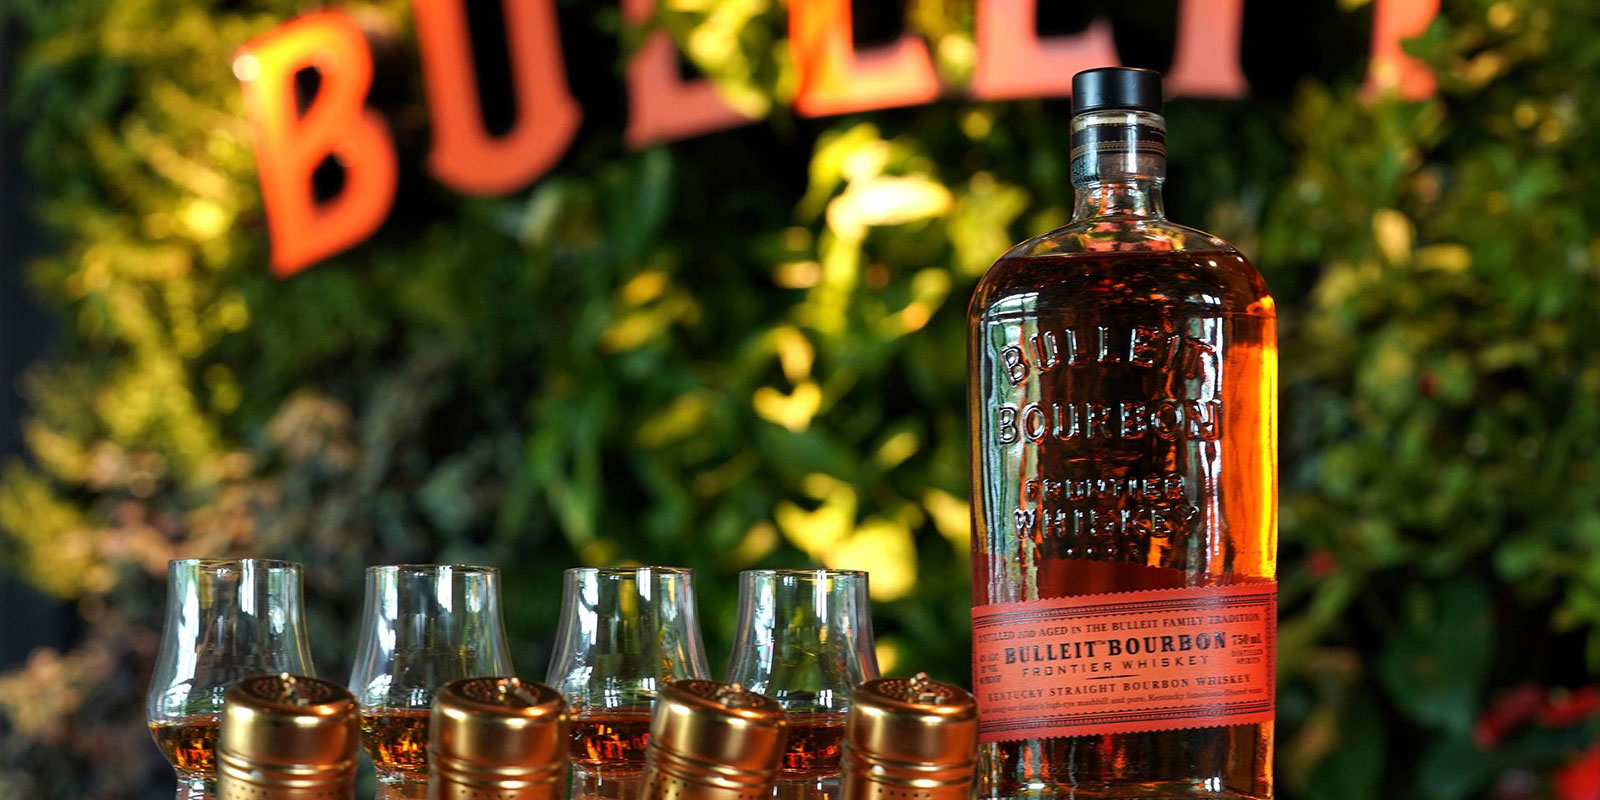 Bulleit will be the first brand distilled at Diageo's new Lebanon, KY distillery